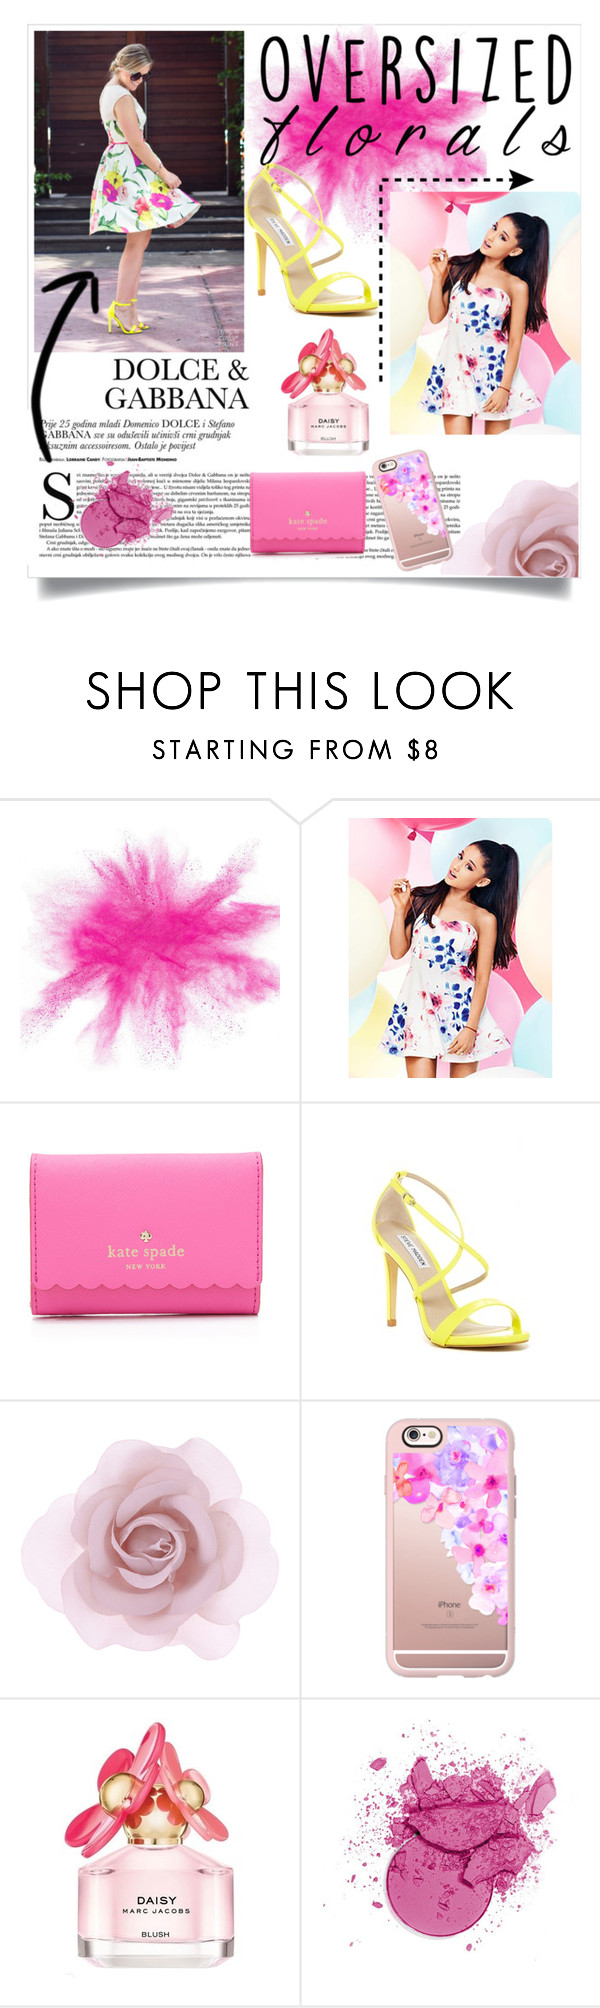 """""""Ovesized Florals"""" by spendyfoxx ❤ liked on Polyvore featuring Lipsy, Kate Spade, Steve Madden, Accessorize, Casetify and Marc Jacobs"""